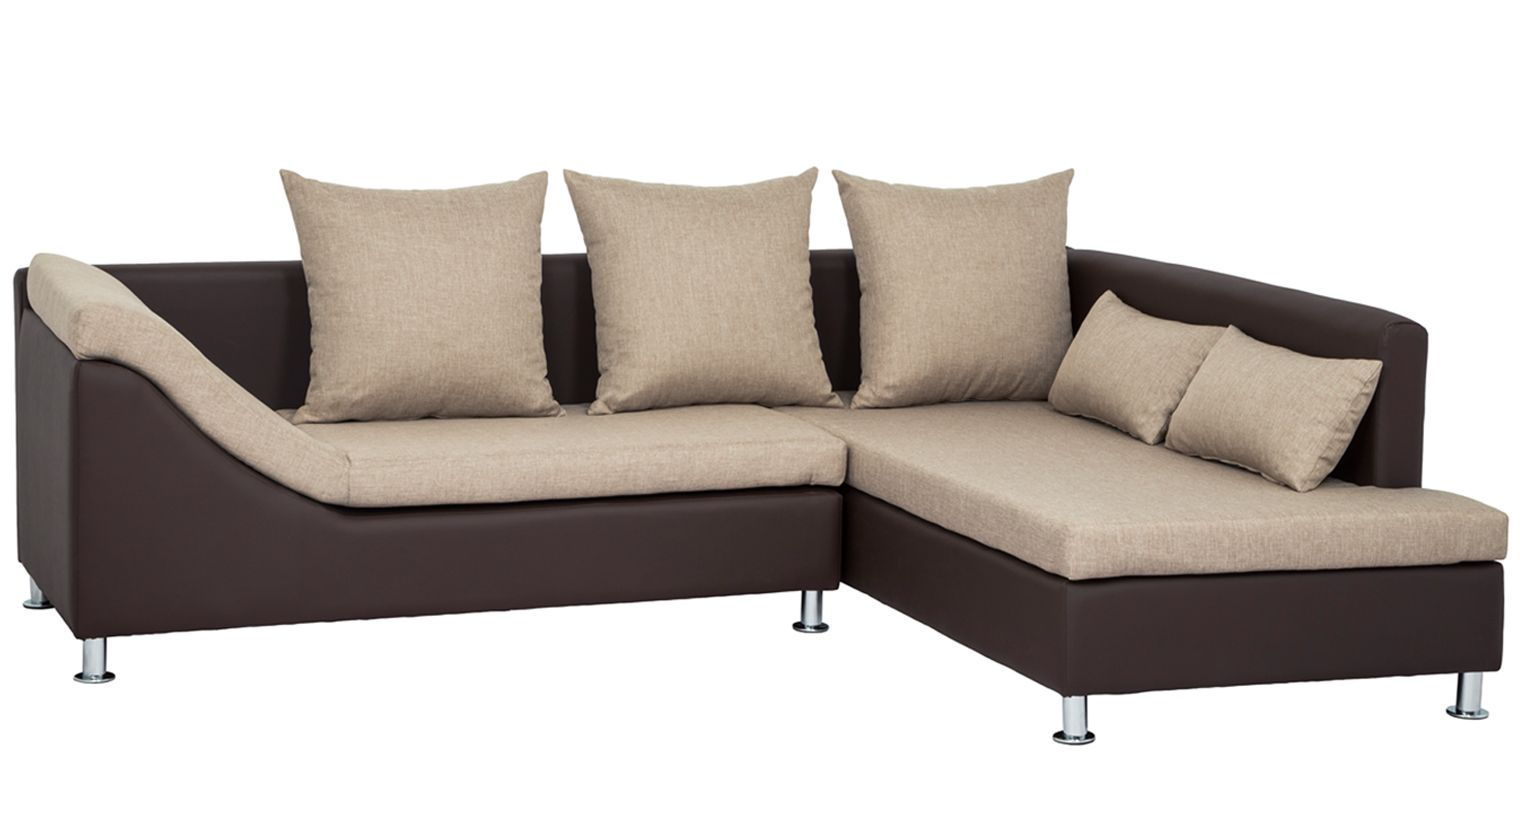 Comprar chaise longue divano chaise longue izq 3 5 plazas for Sofas baratos asturias